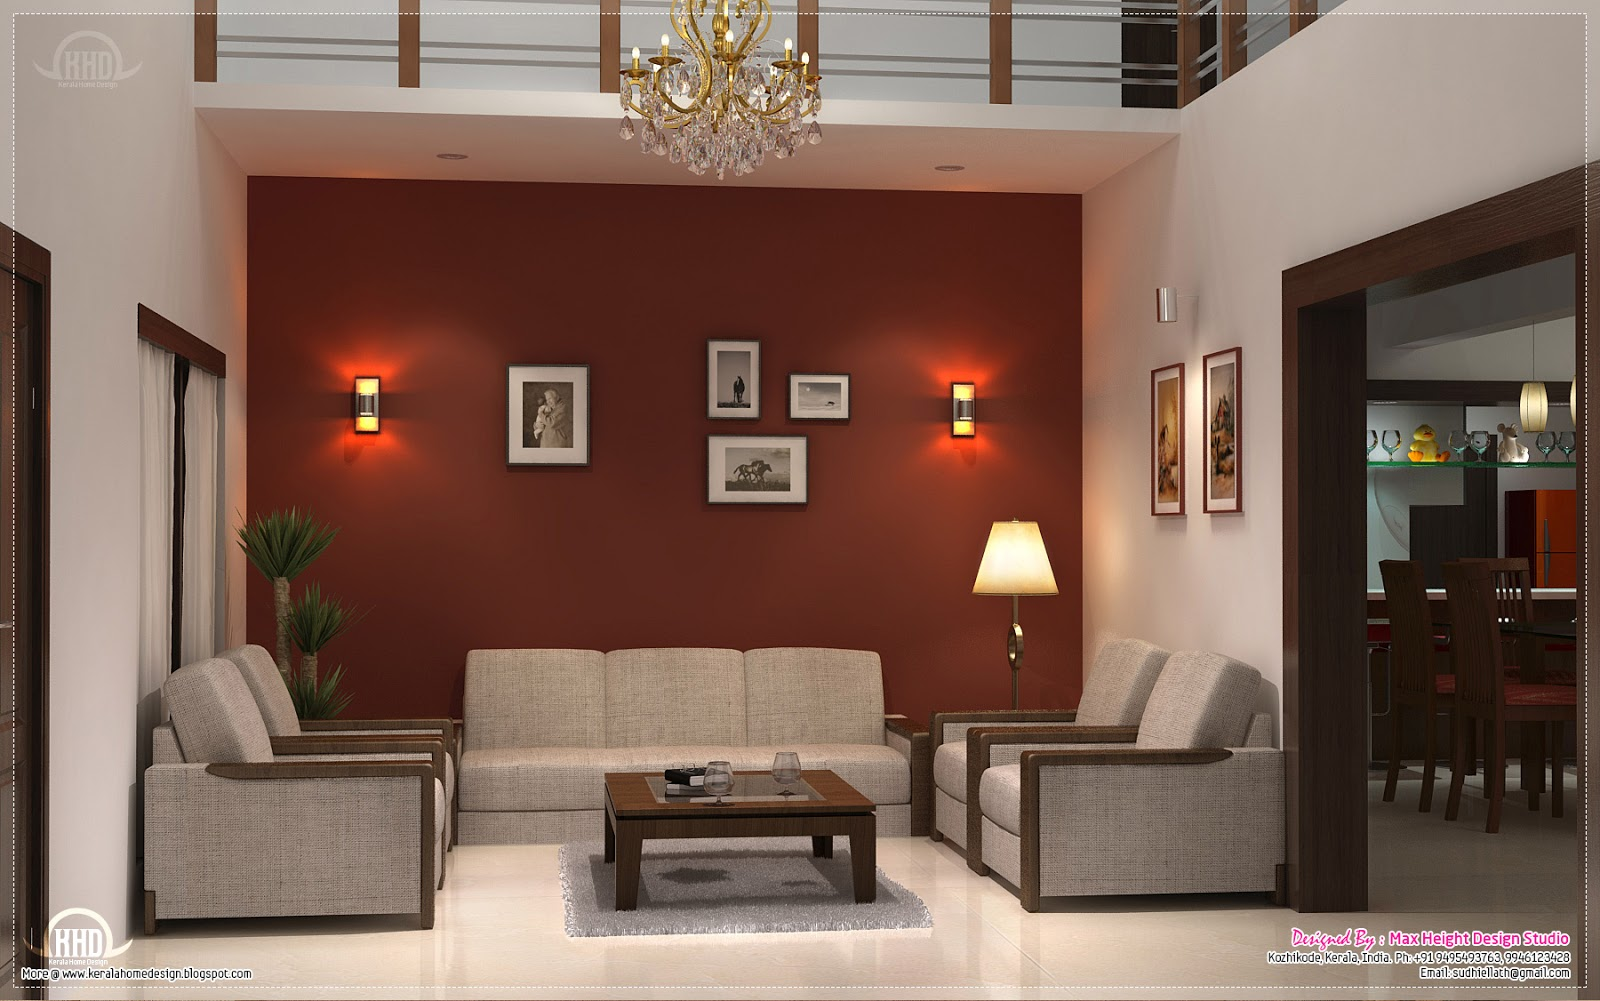 Home interior design ideas kerala home design and floor for Interior designs images